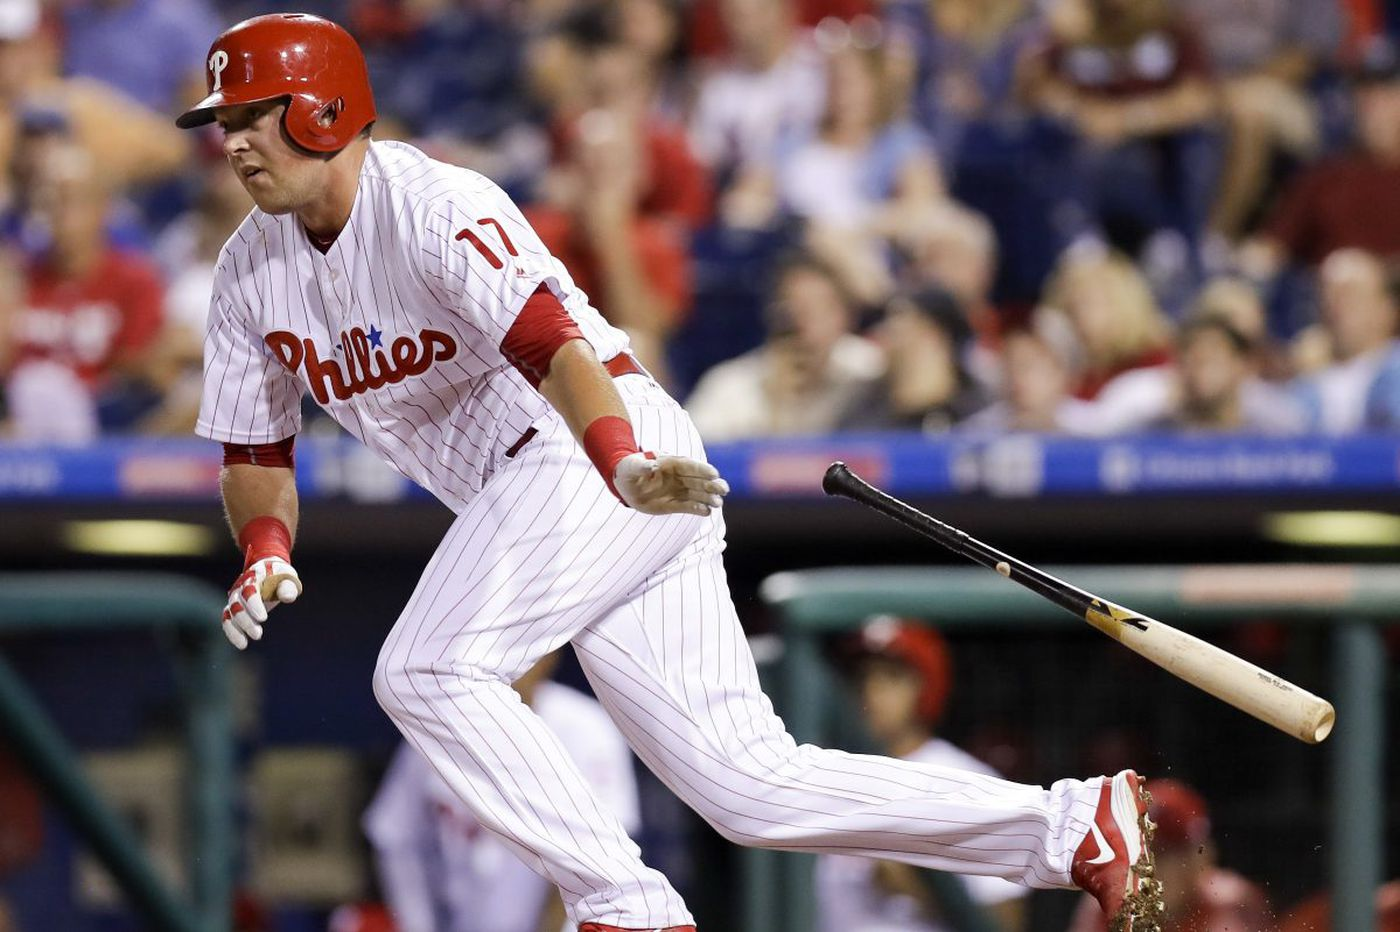 Like Chase Utley, Phillies rookie Rhys Hoskins may need time to shine | Marcus Hayes